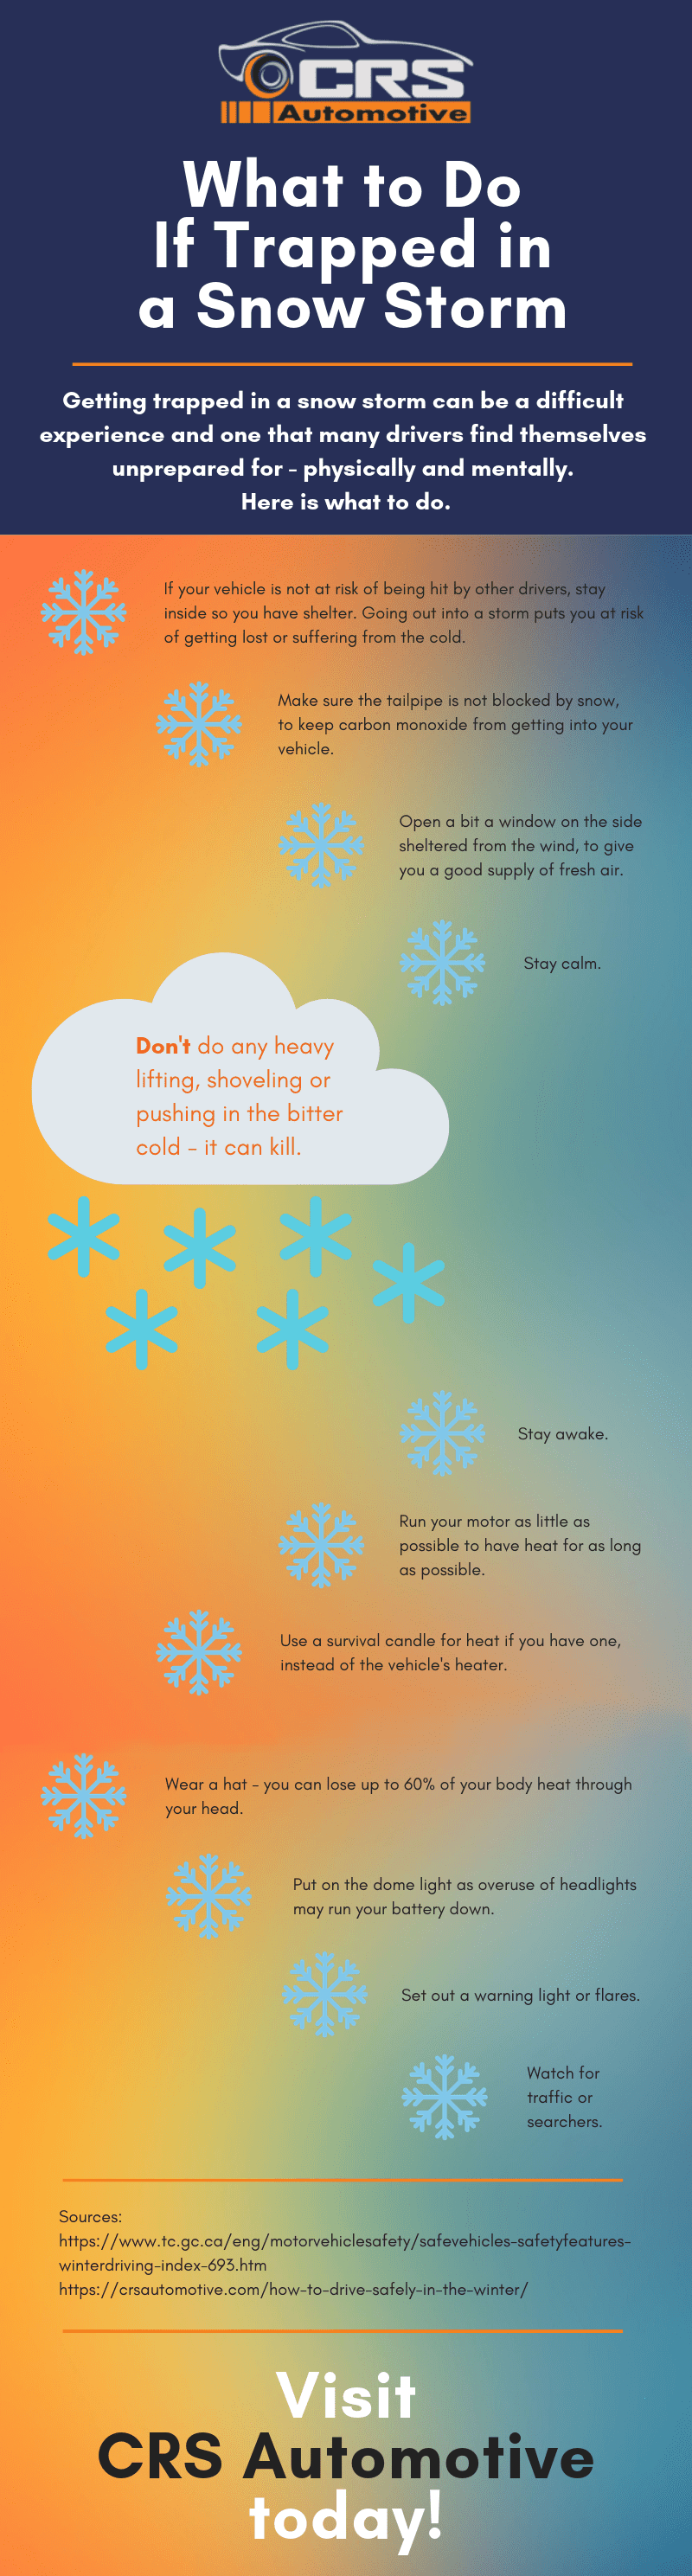 What to do If Trapped in a Snow Storm Infographic